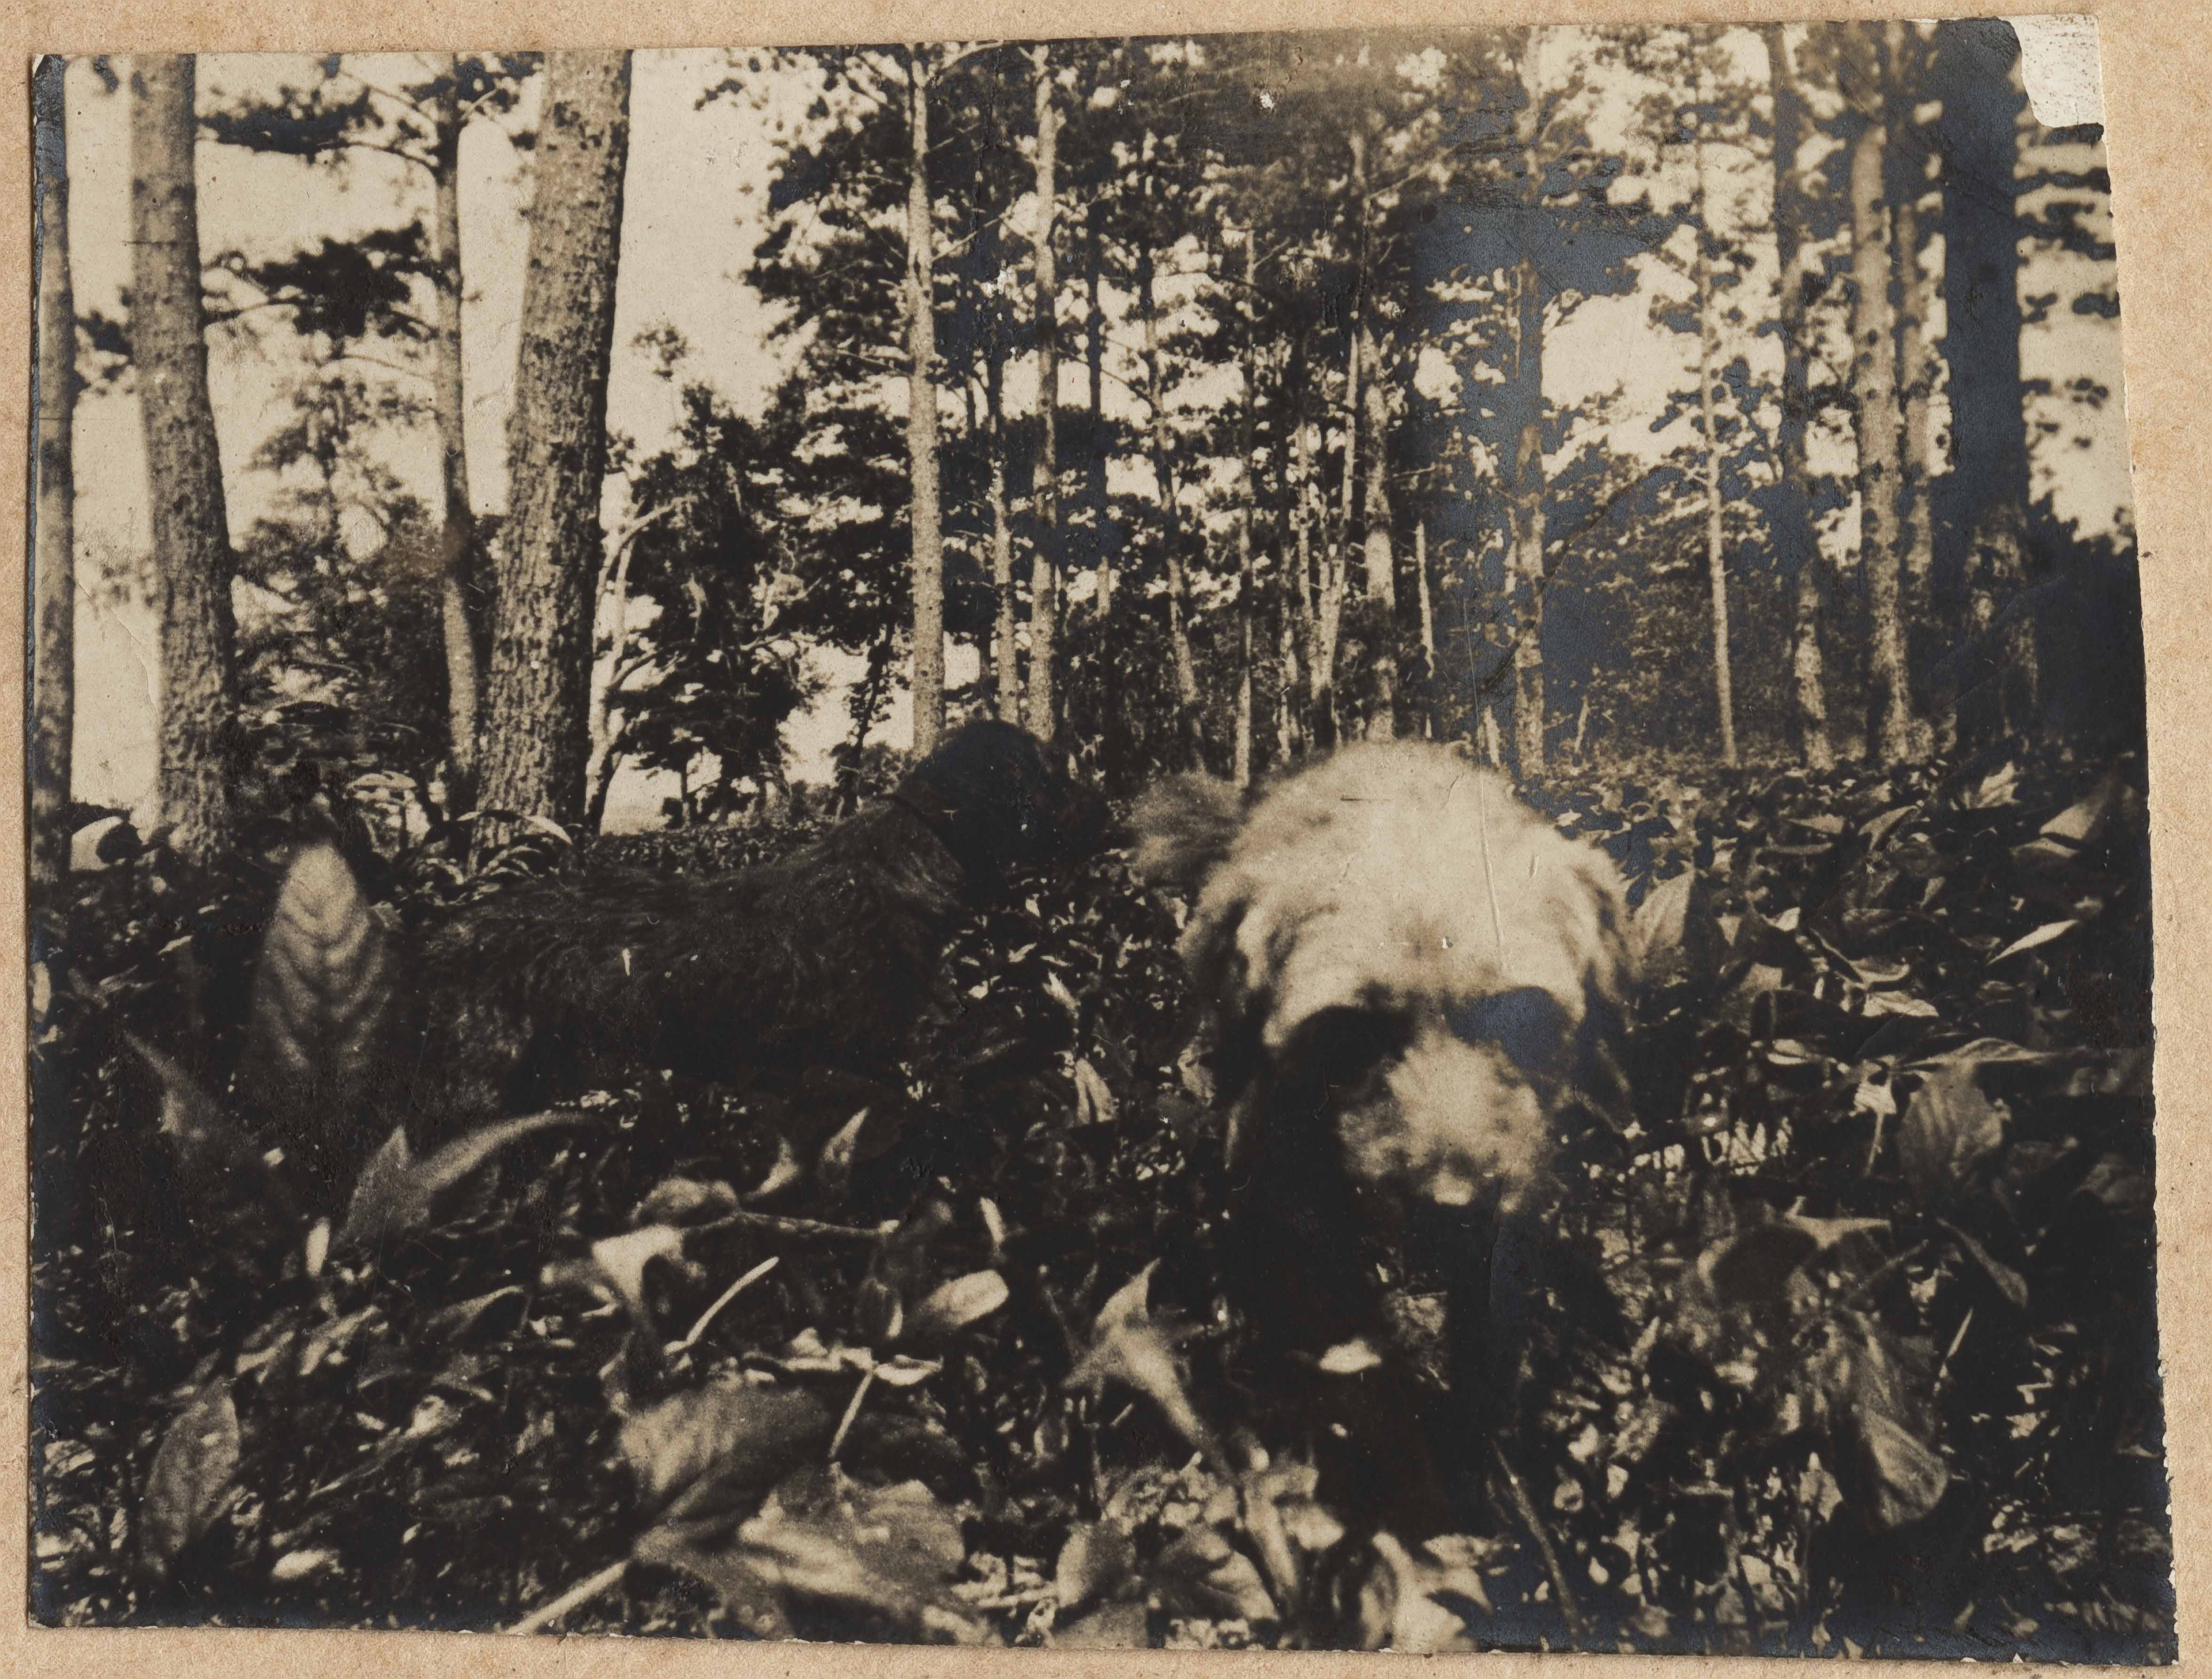 Dogs in the underbrush